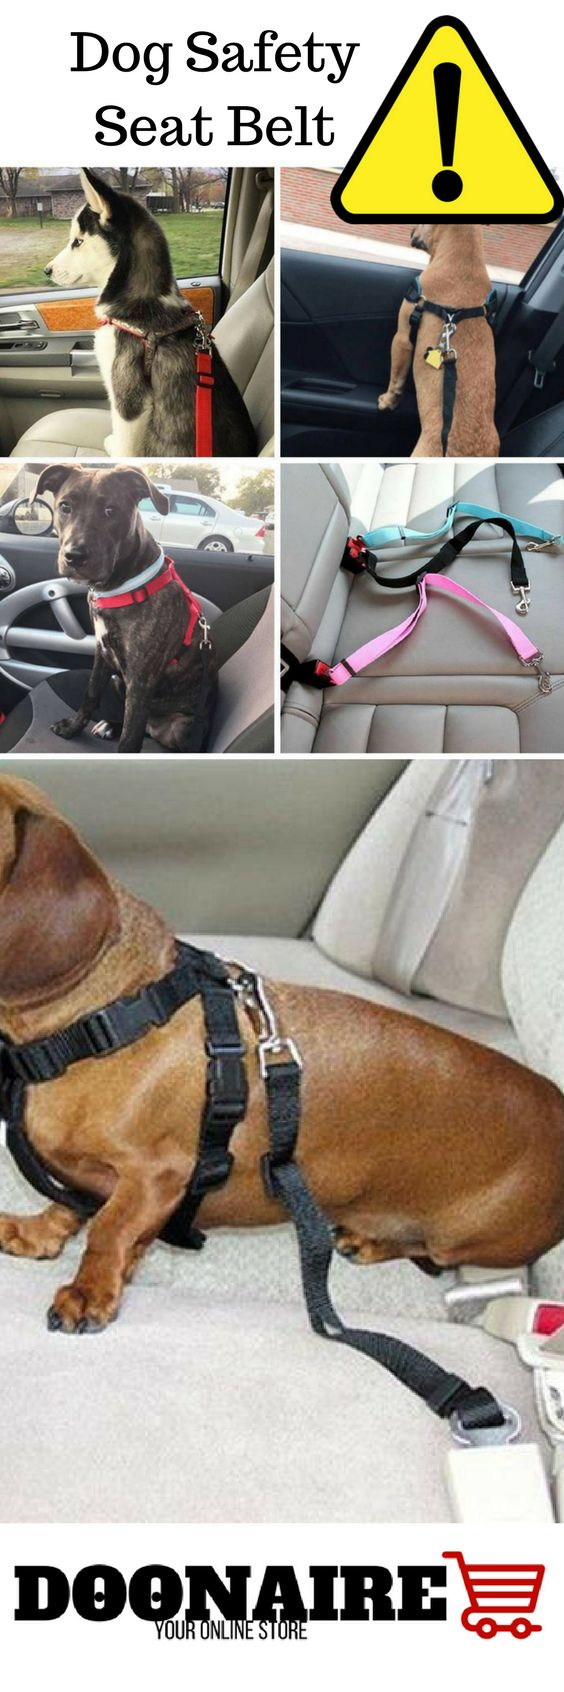 Adjustable Dog Safety Seat Belt Harness.   Dog Pet Safety Seatbelt Car Vehicle Seat Belt Adjustable Harness.  Feature:  Reliable and convenience.  Multi-colors for you to choose.  Adjustable straps to fit most pet dog, cat.  Fully adjustable and attachable to all vehicles' seat belt receptacles. Keep your pet safely restrained and secure in vehicle while driving.